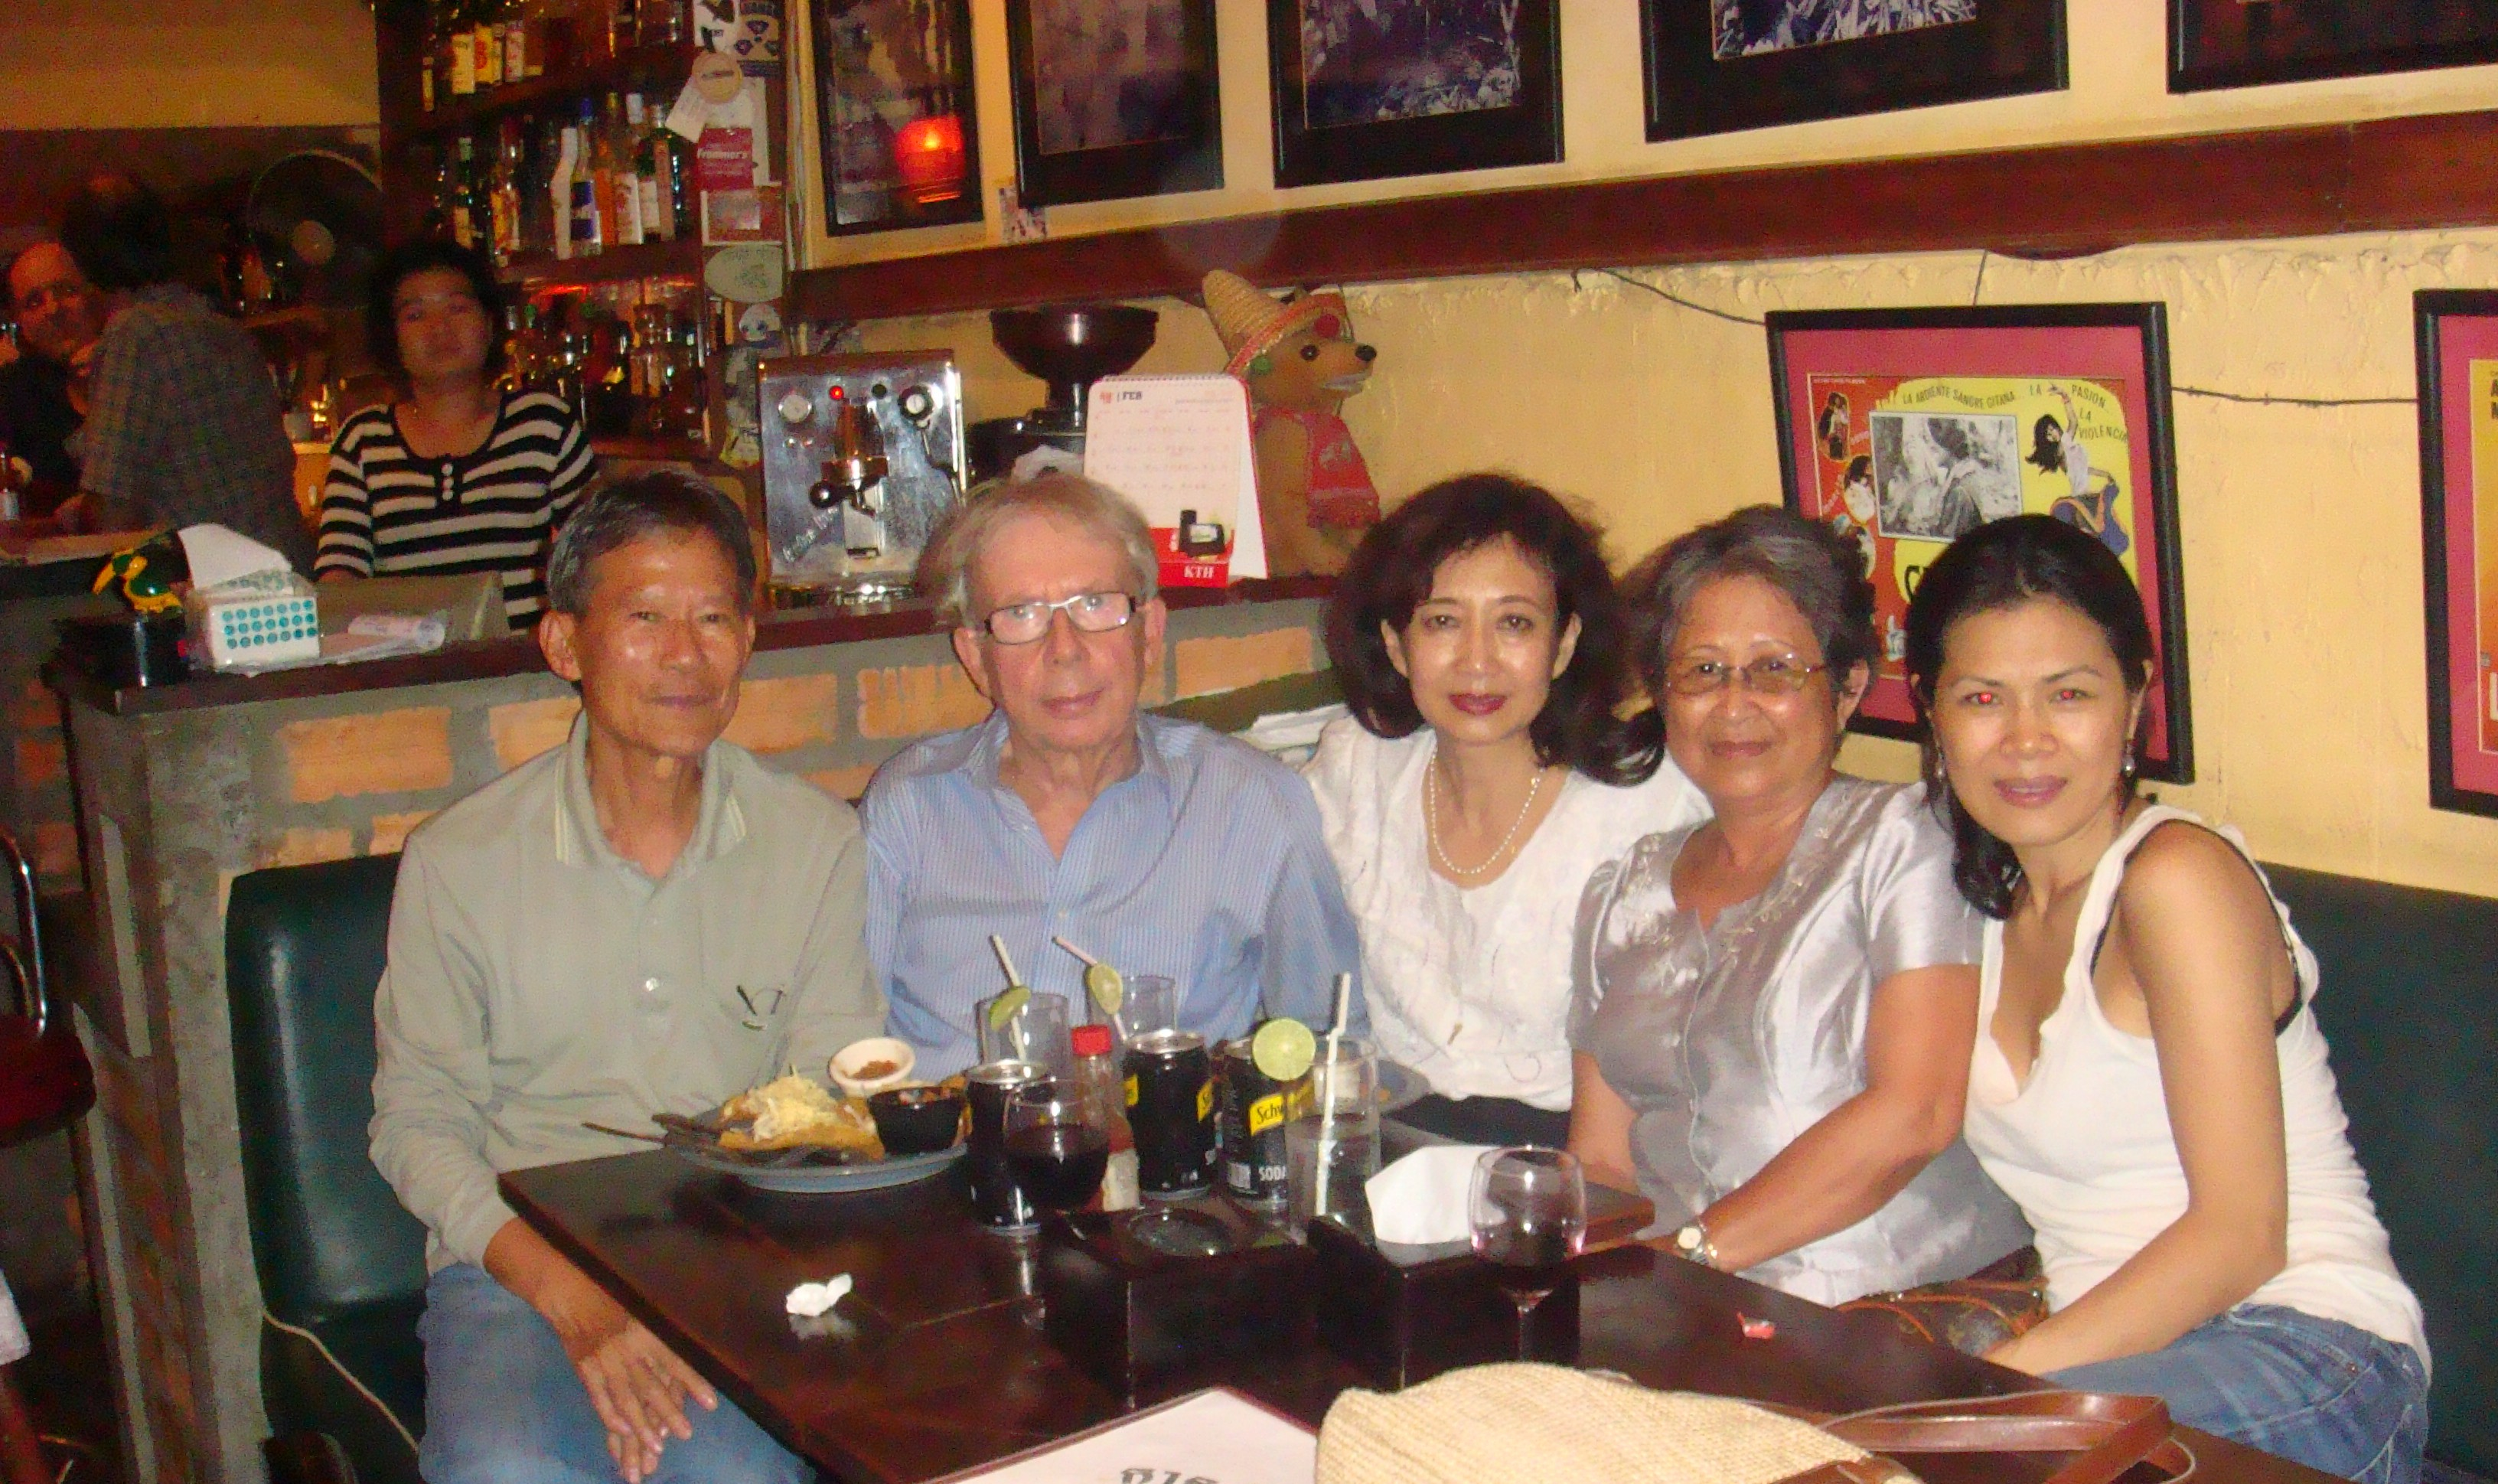 Theary Seng, Nan, An, Jim and Milly Pringle, 21 Feb. 2011